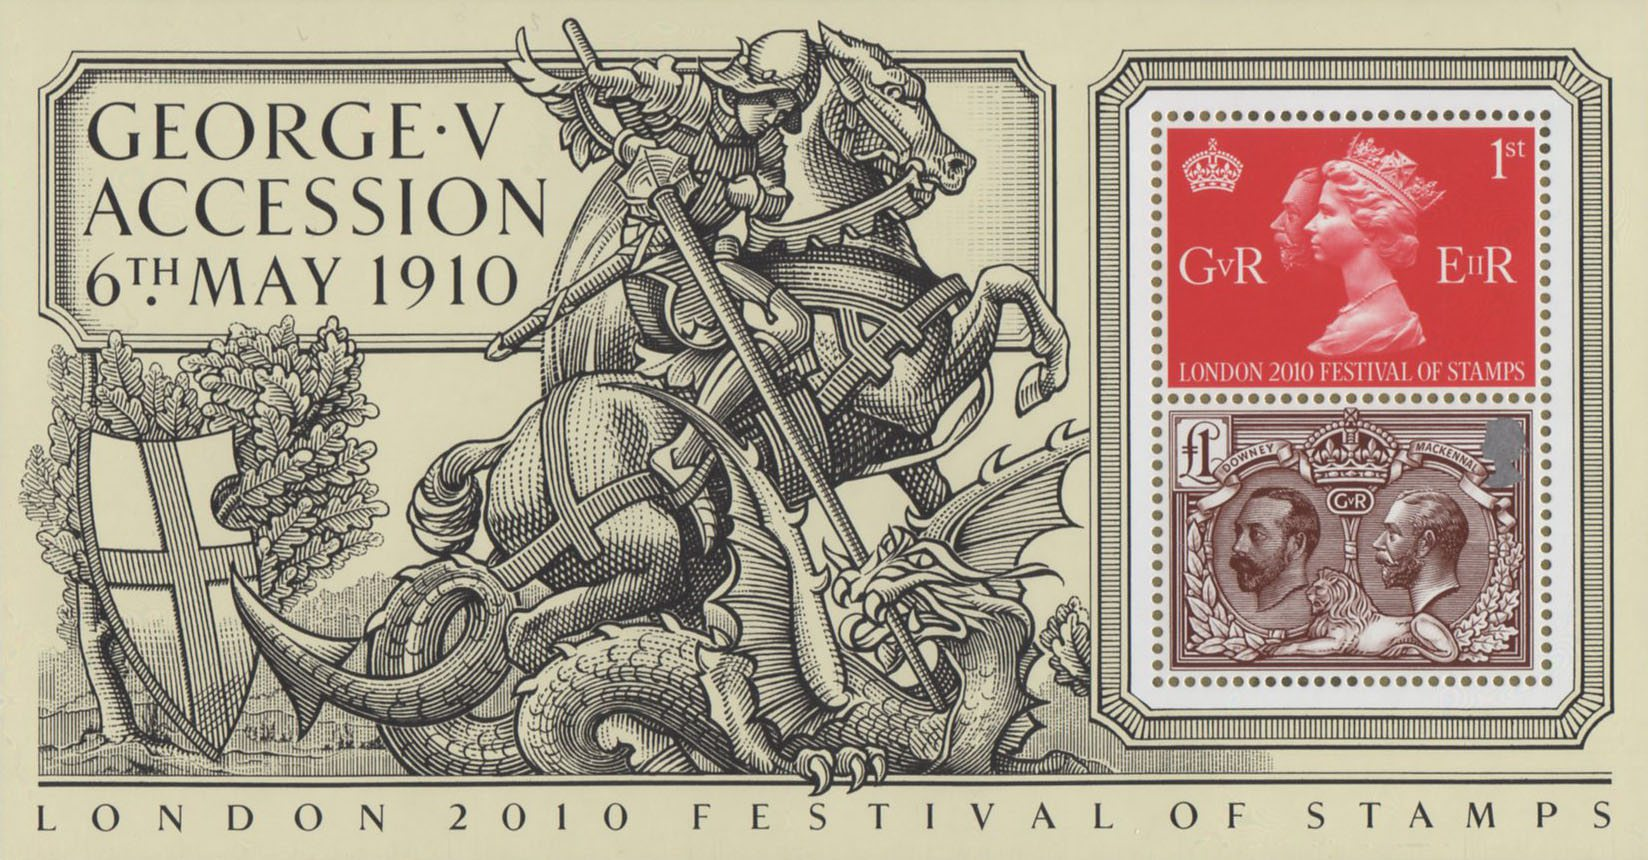 Miniature sheet with a large image of St George and the Dragon for the London 2010 Festival of Stamps.